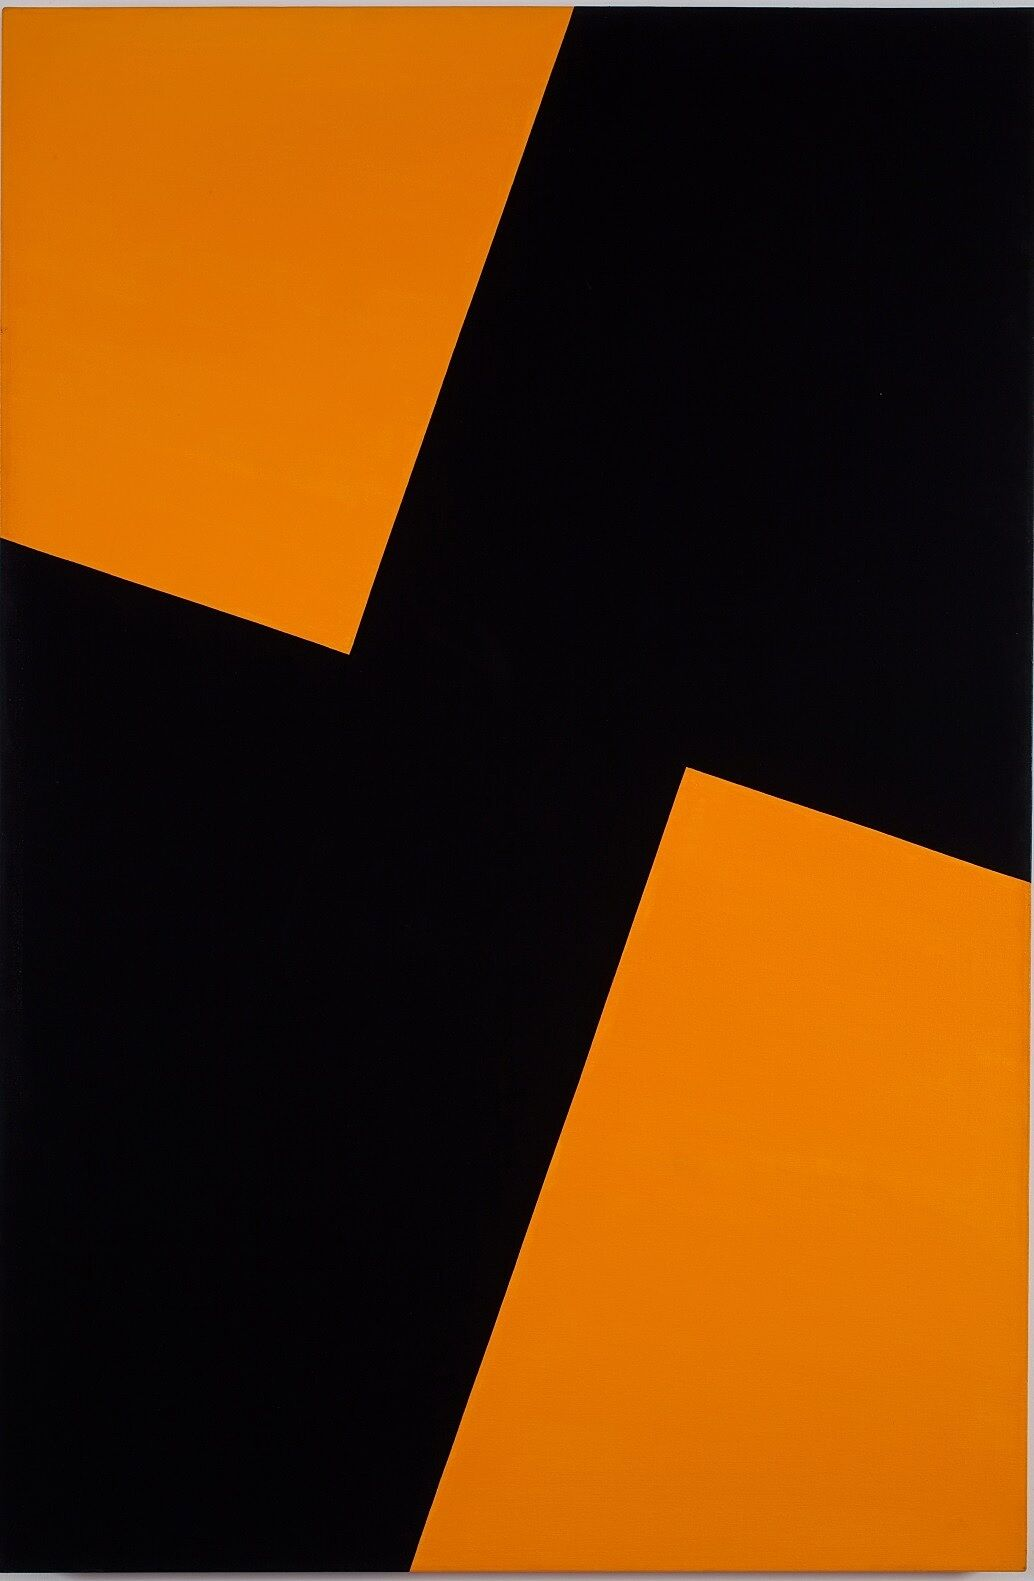 Orange and black artwork by Carmen Herrera.